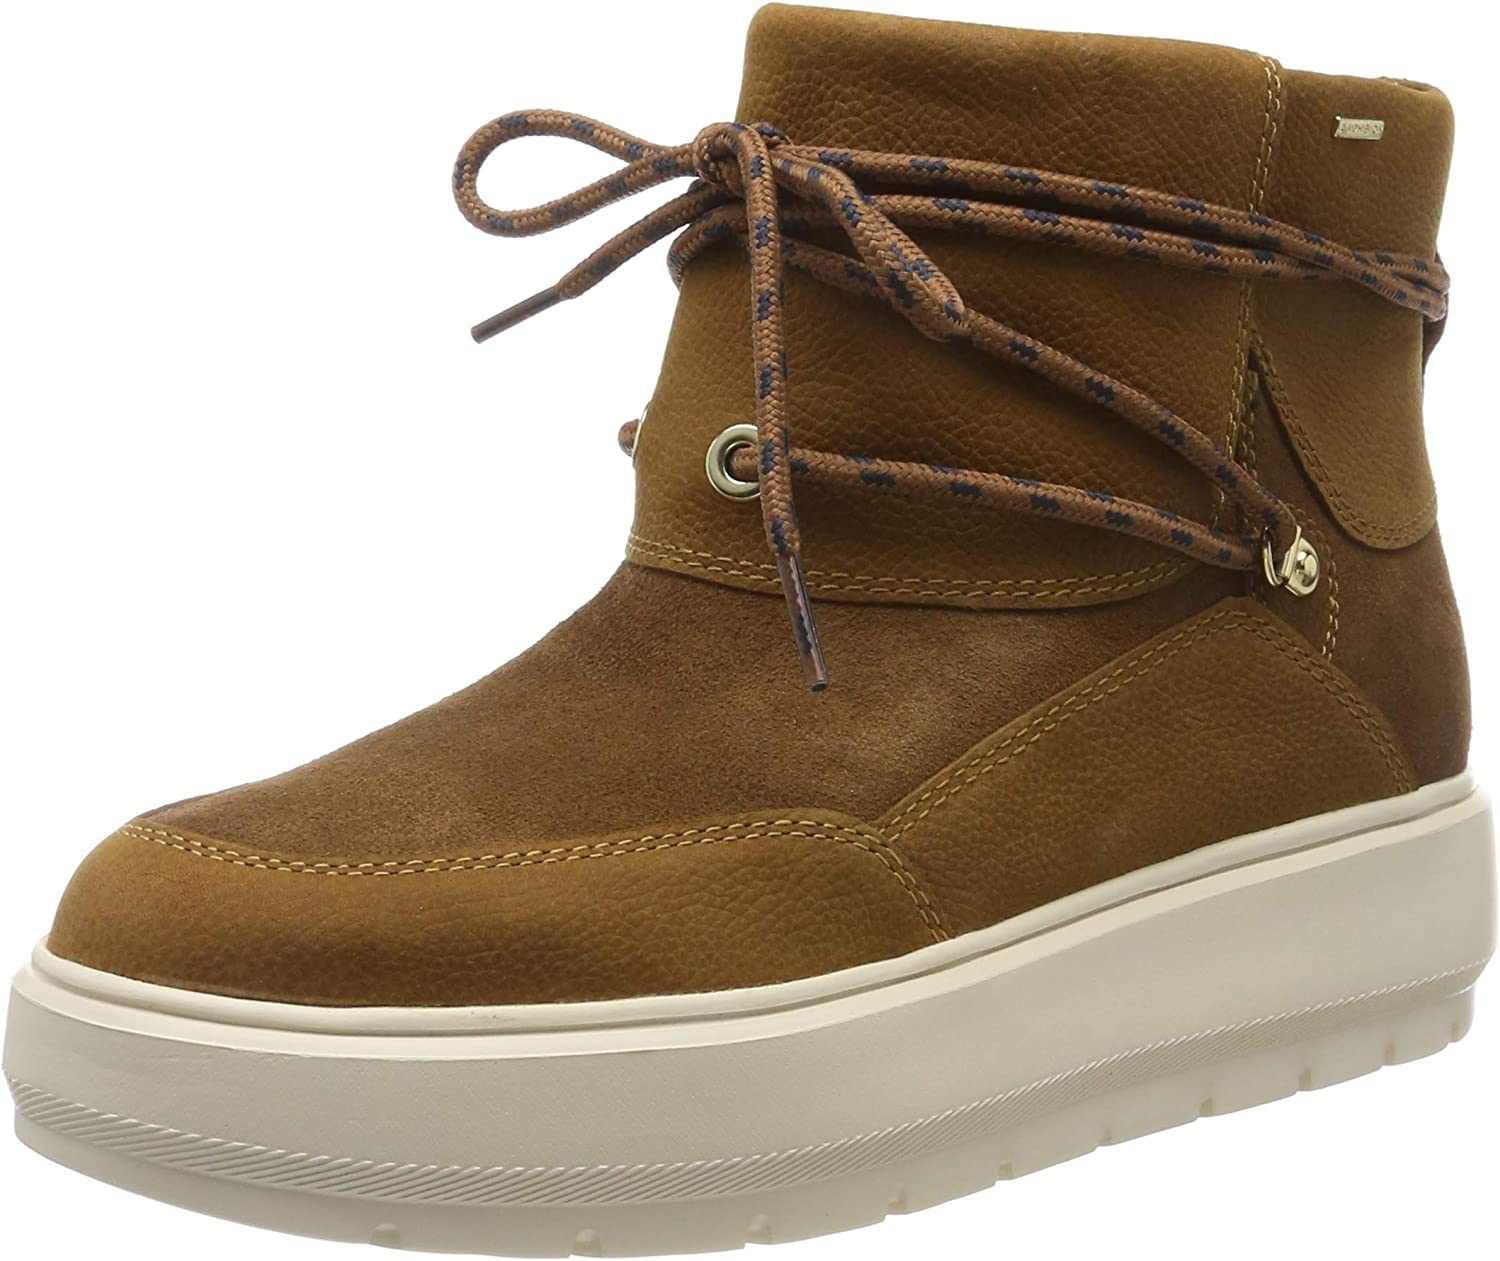 Humedal terminar lazo  Geox Women's D Kaula B ABX B Ankle Boots: Amazon.co.uk: Shoes & Bags